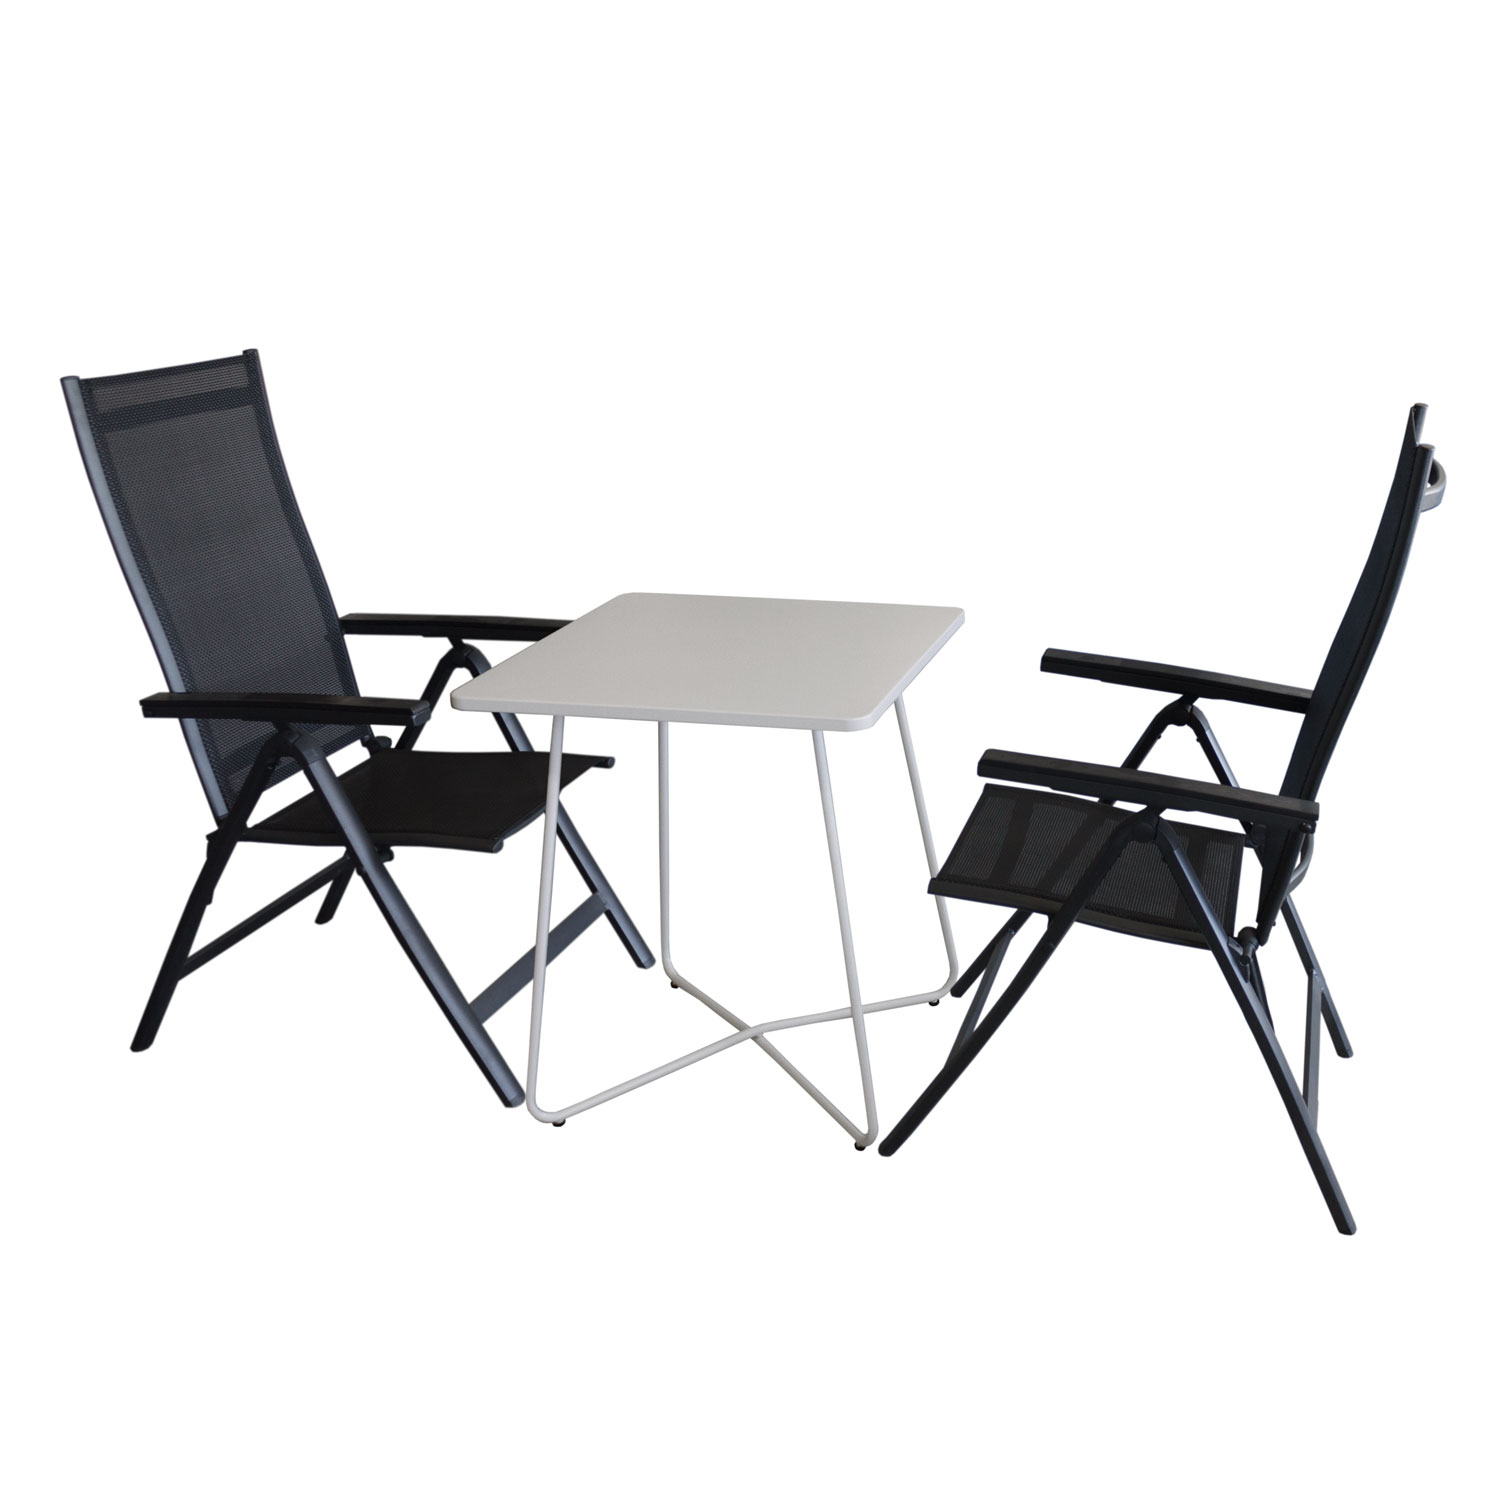 3tlg balkonm bel set bistrotisch 60x60cm wei 2x. Black Bedroom Furniture Sets. Home Design Ideas